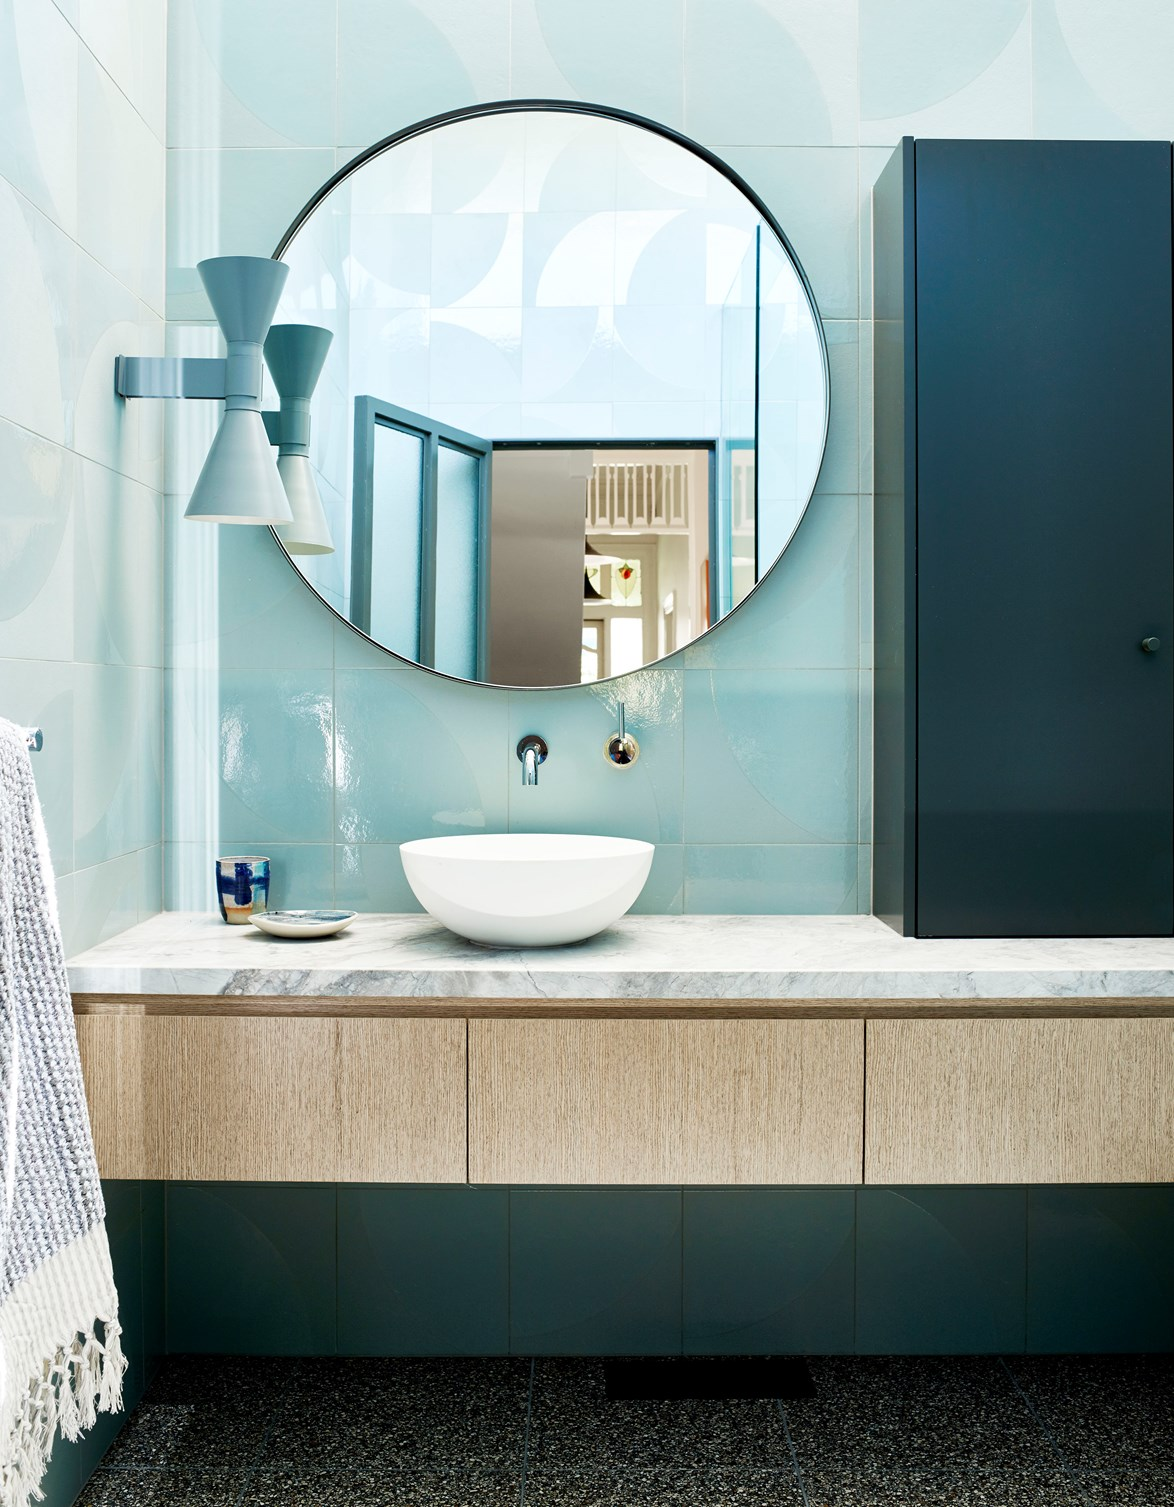 Ceramic tiles in blue-green tones have a calming effect in bathroom designed by Mardi Doherty and Michelle Evans. *Photo:* Mark Roper